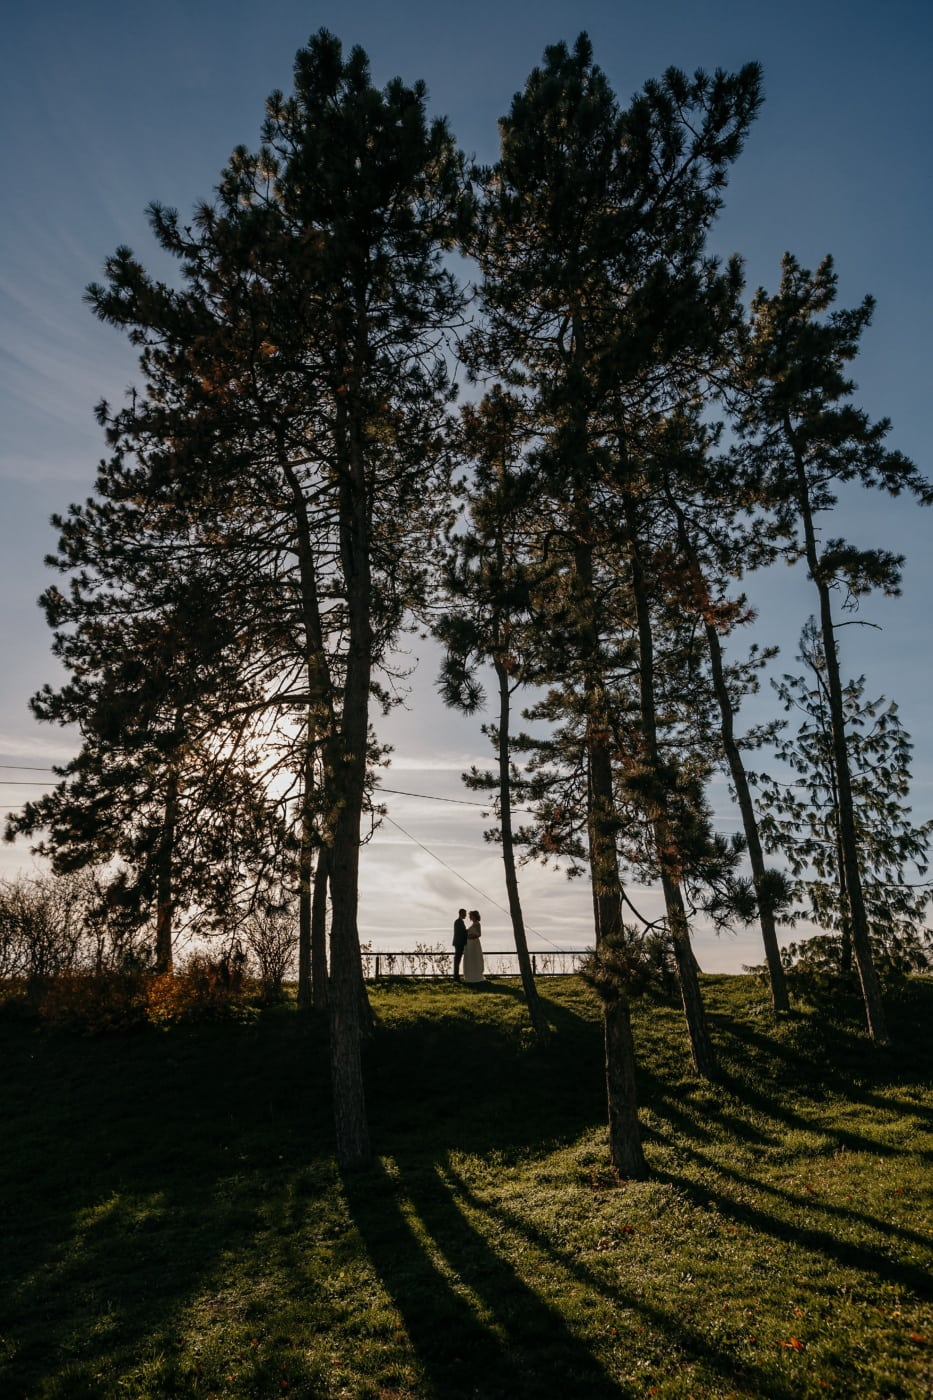 romantic, meeting, hilltop, man, standing, woman, dawn, landscape, forest, wood